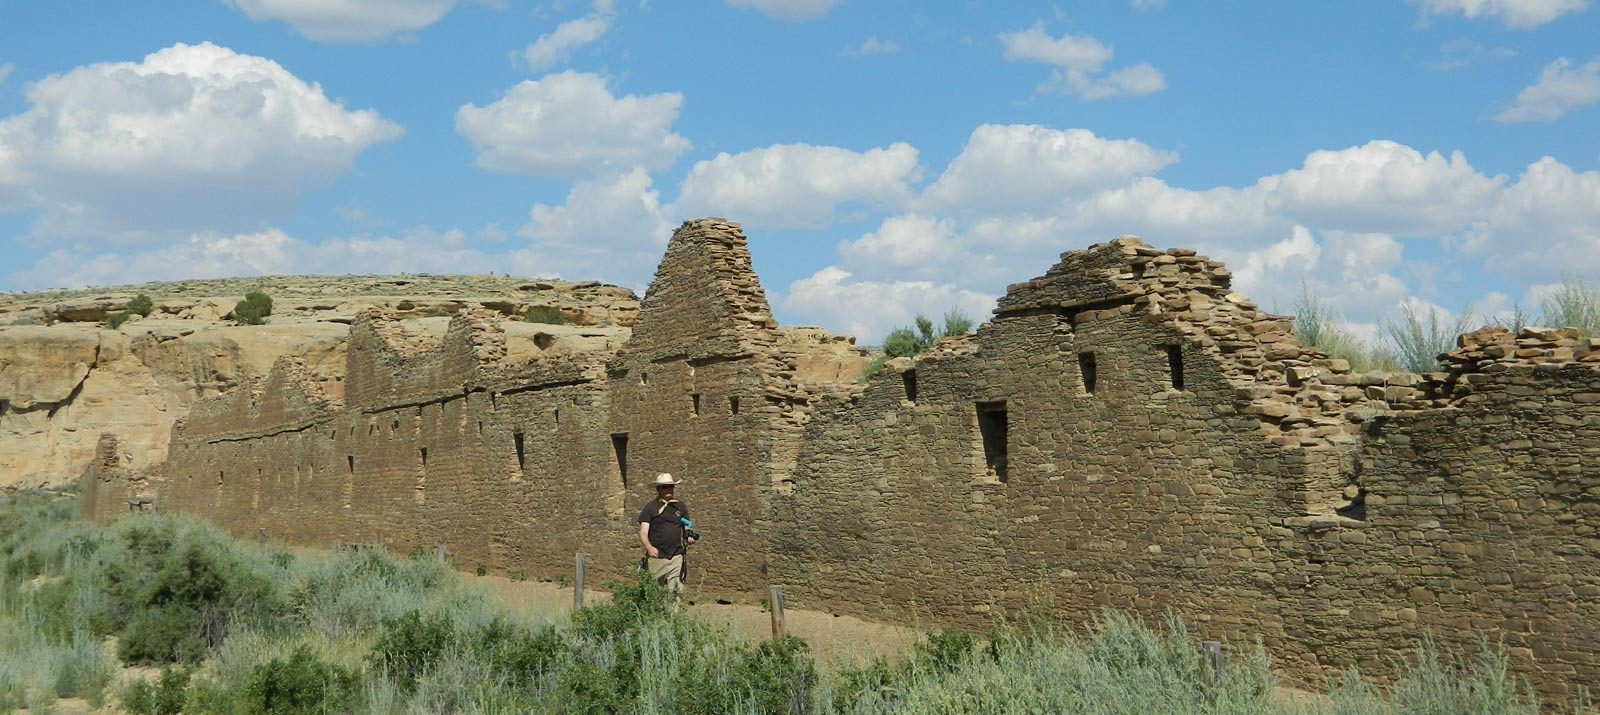 Ancient Pueblo Walls